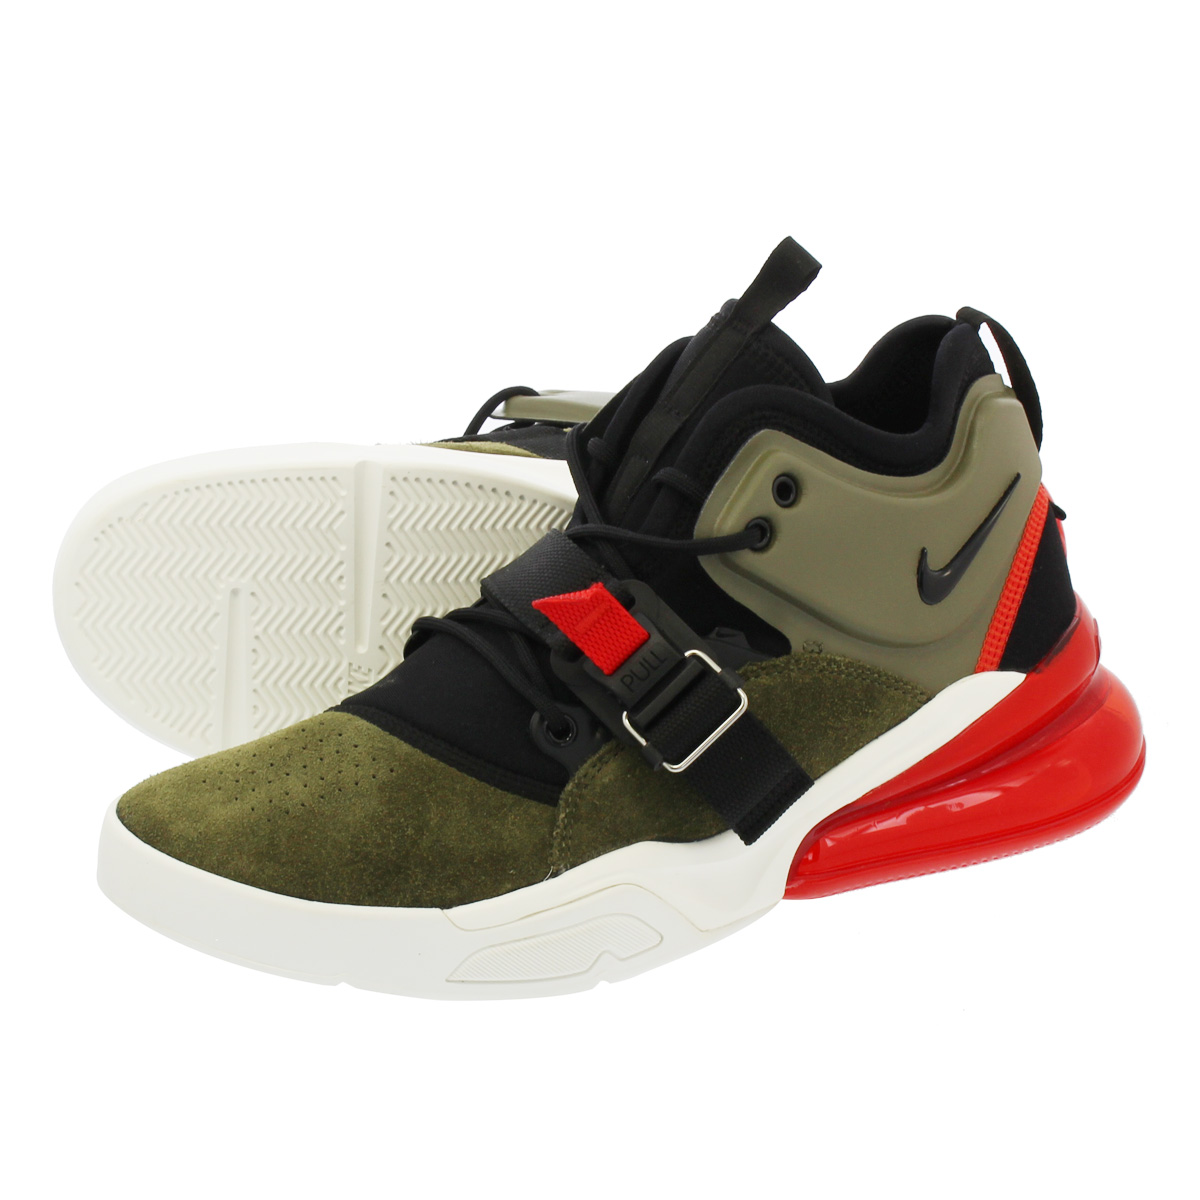 NIKE AIR FORCE 270 ナイキ エア フォース 270 MEDIUM OLIVE/BLACK/CHALLENGE RED/SAIL ah6772-200